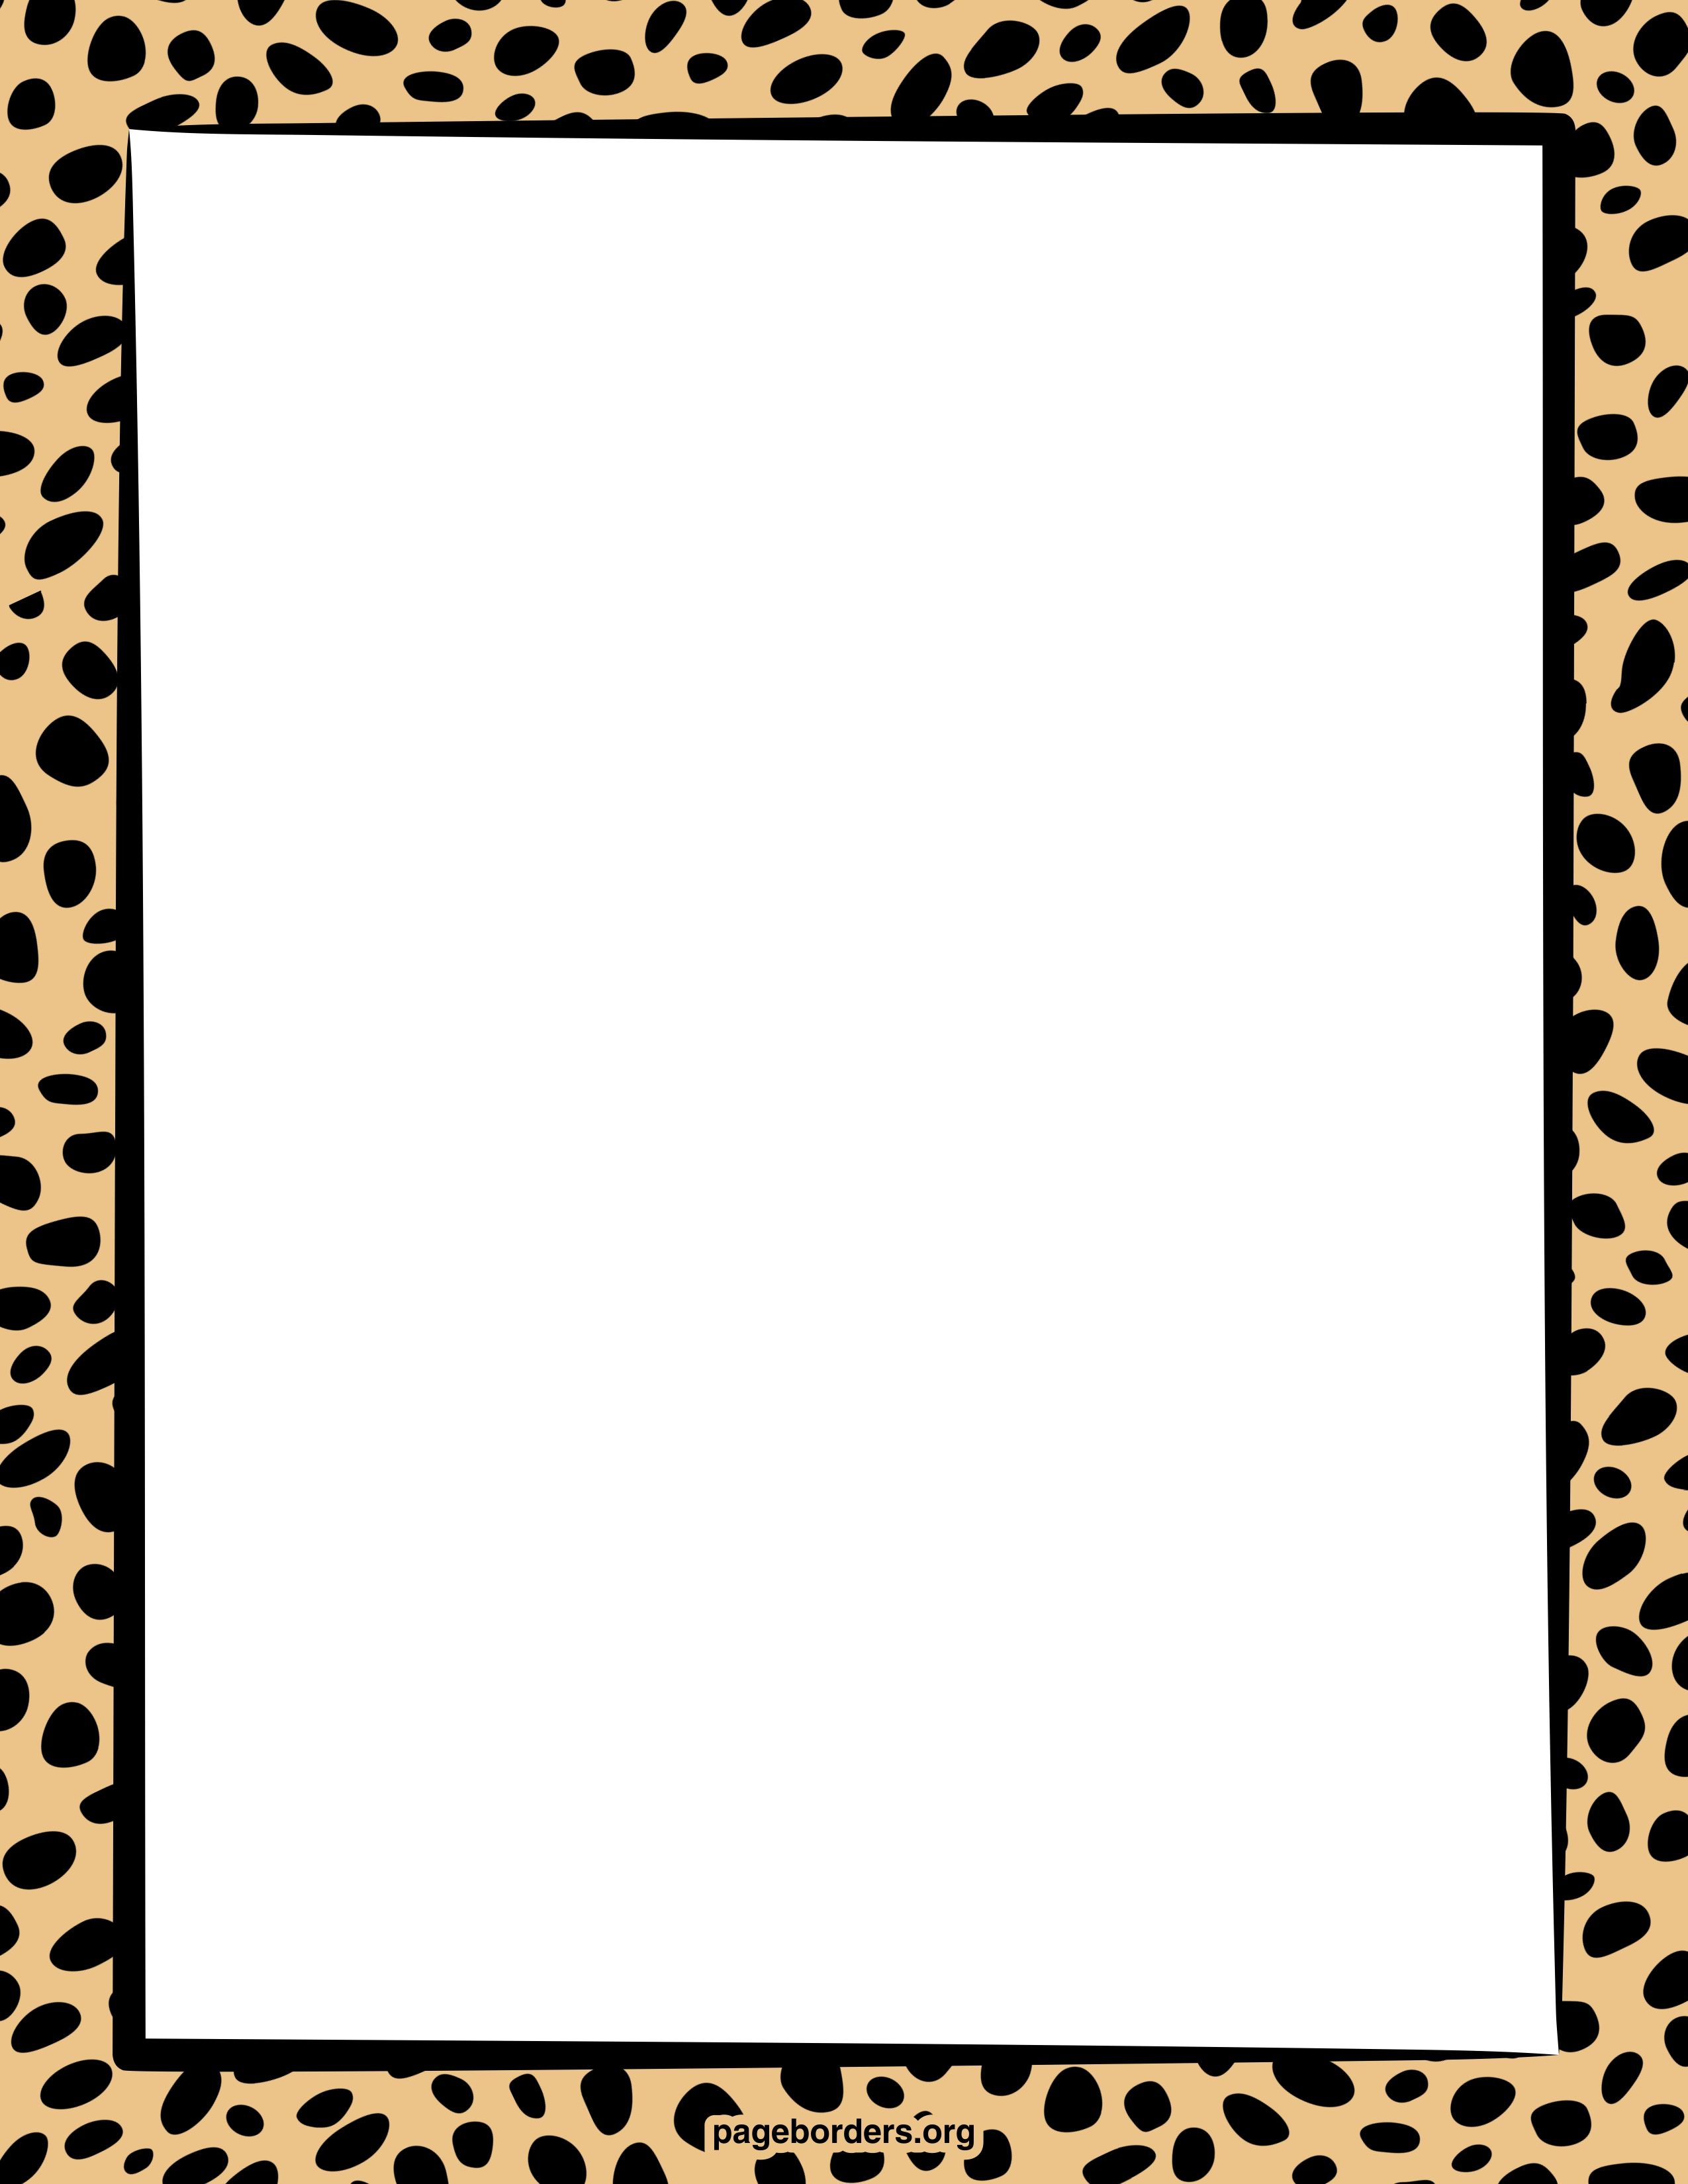 Camo Border Clip Art Free Clipart Download For Camouflage Template.